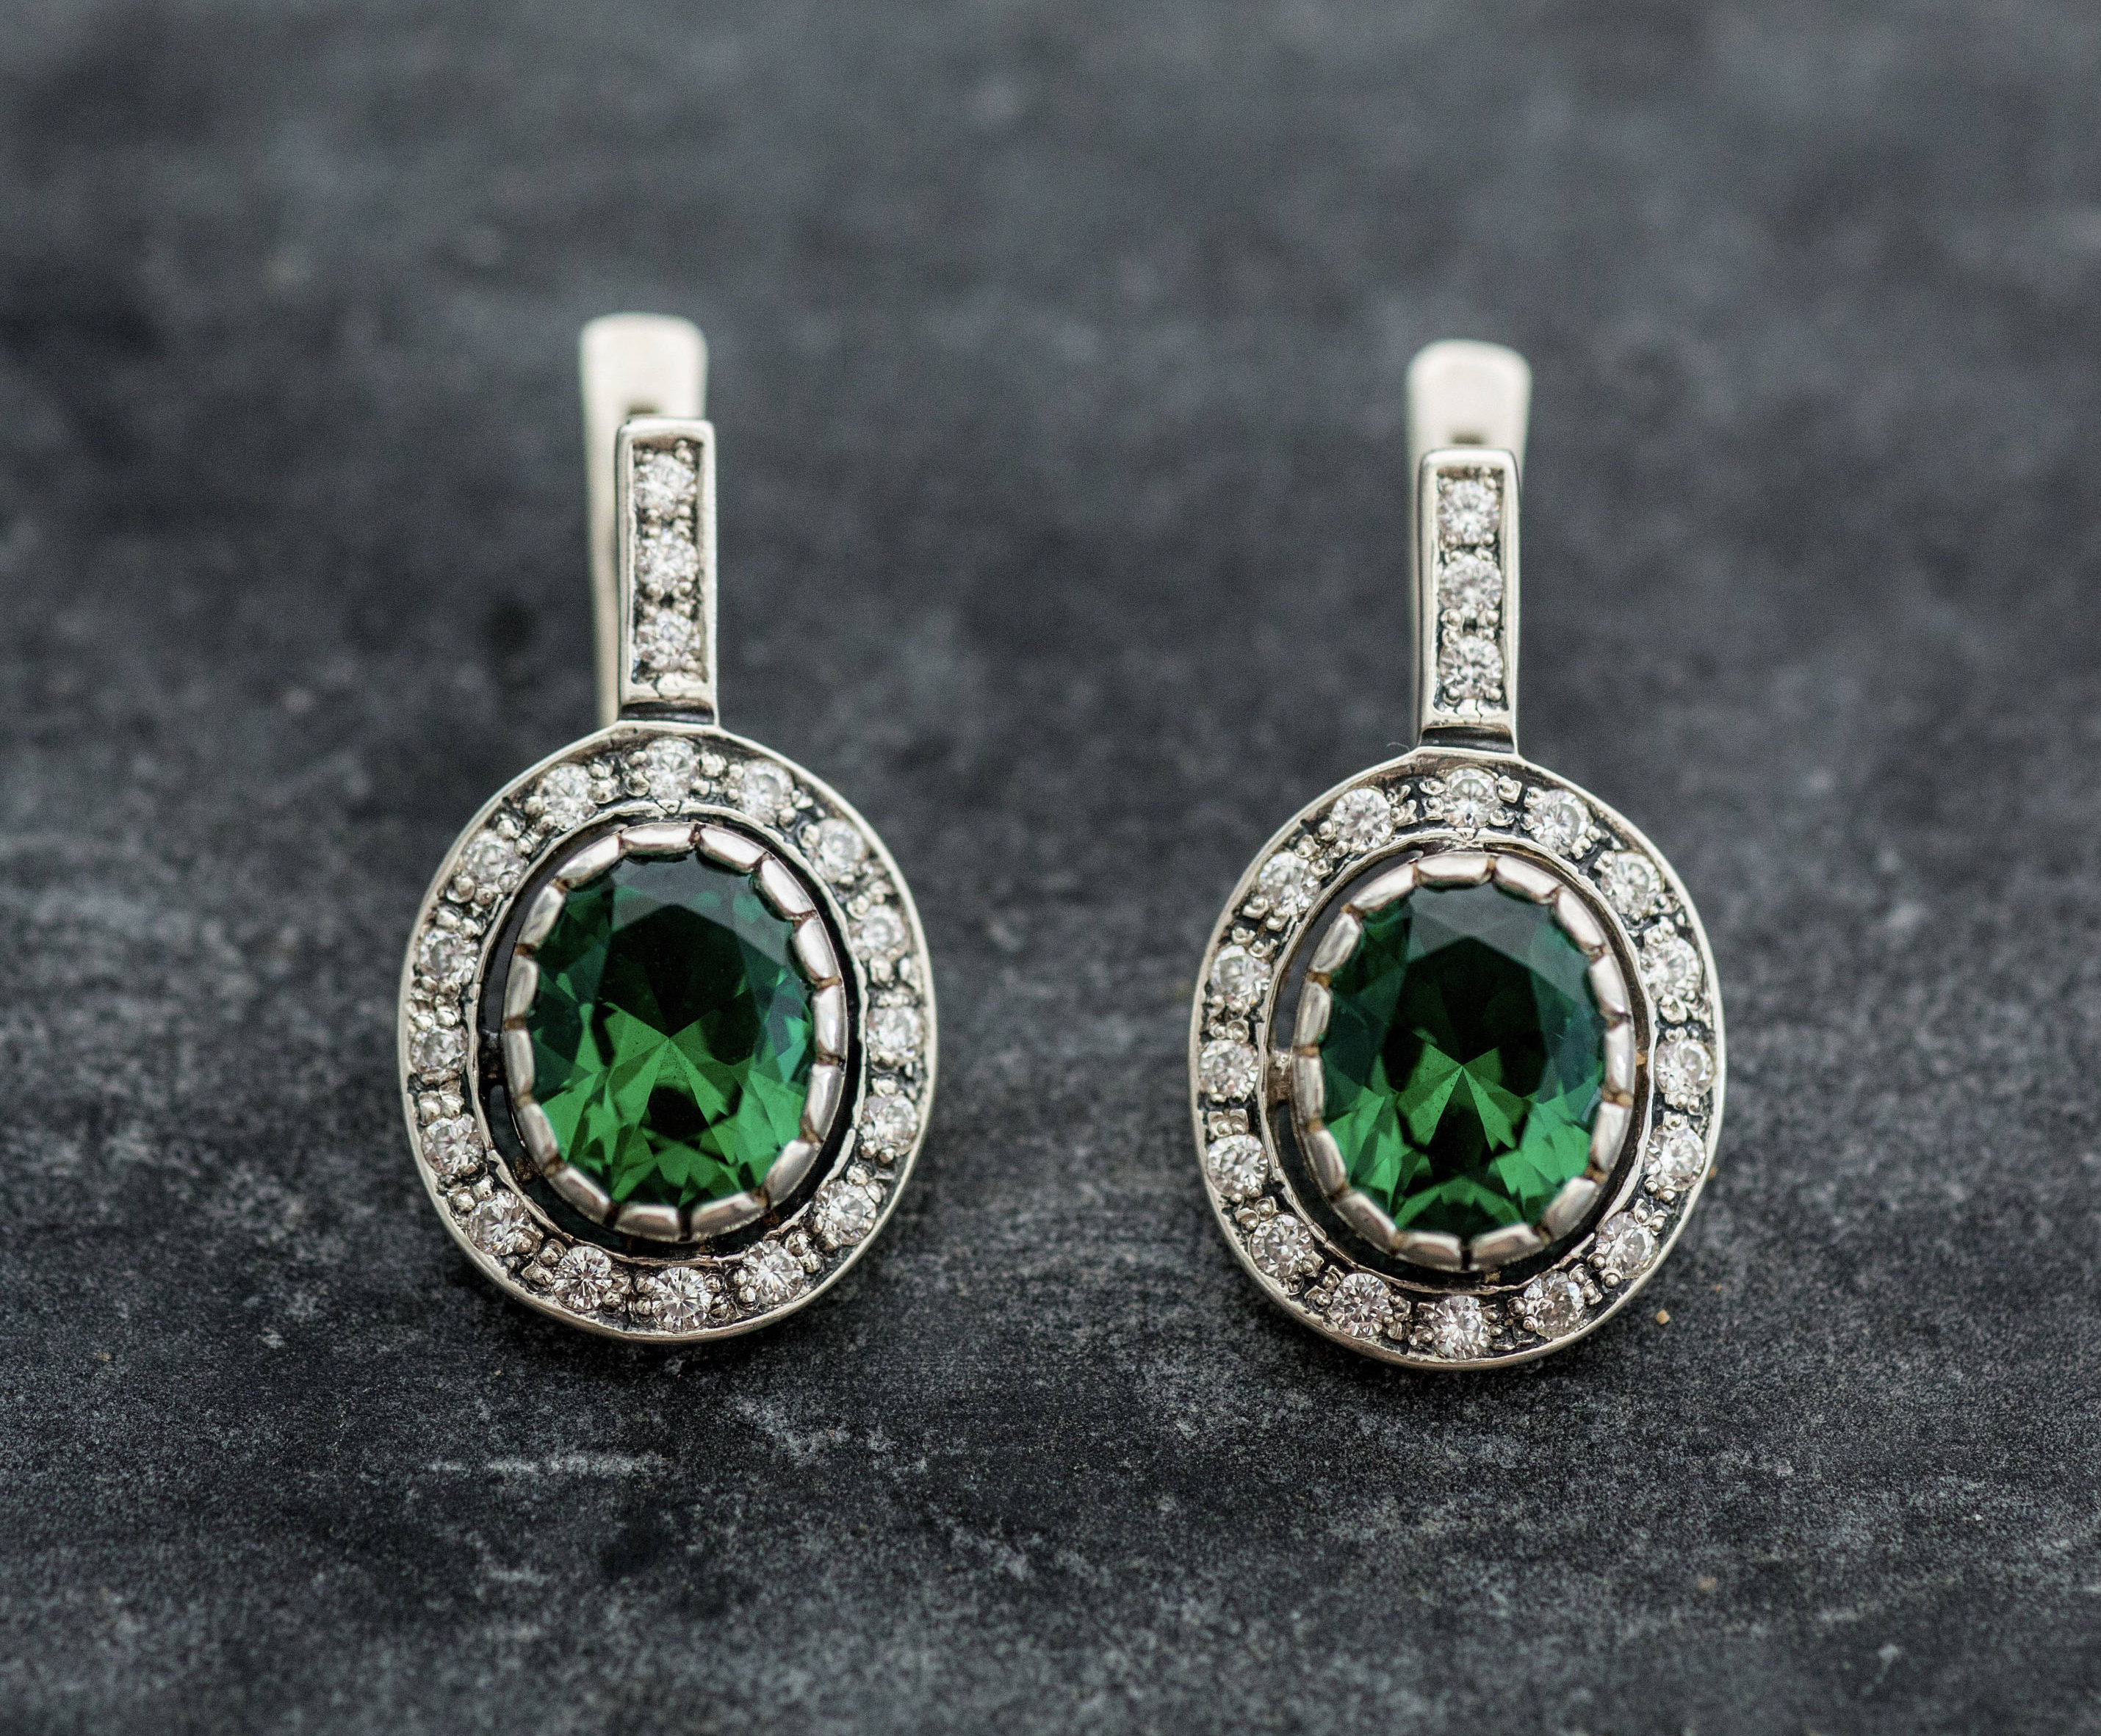 emerald stone earrings claire ear jewellery crawler s